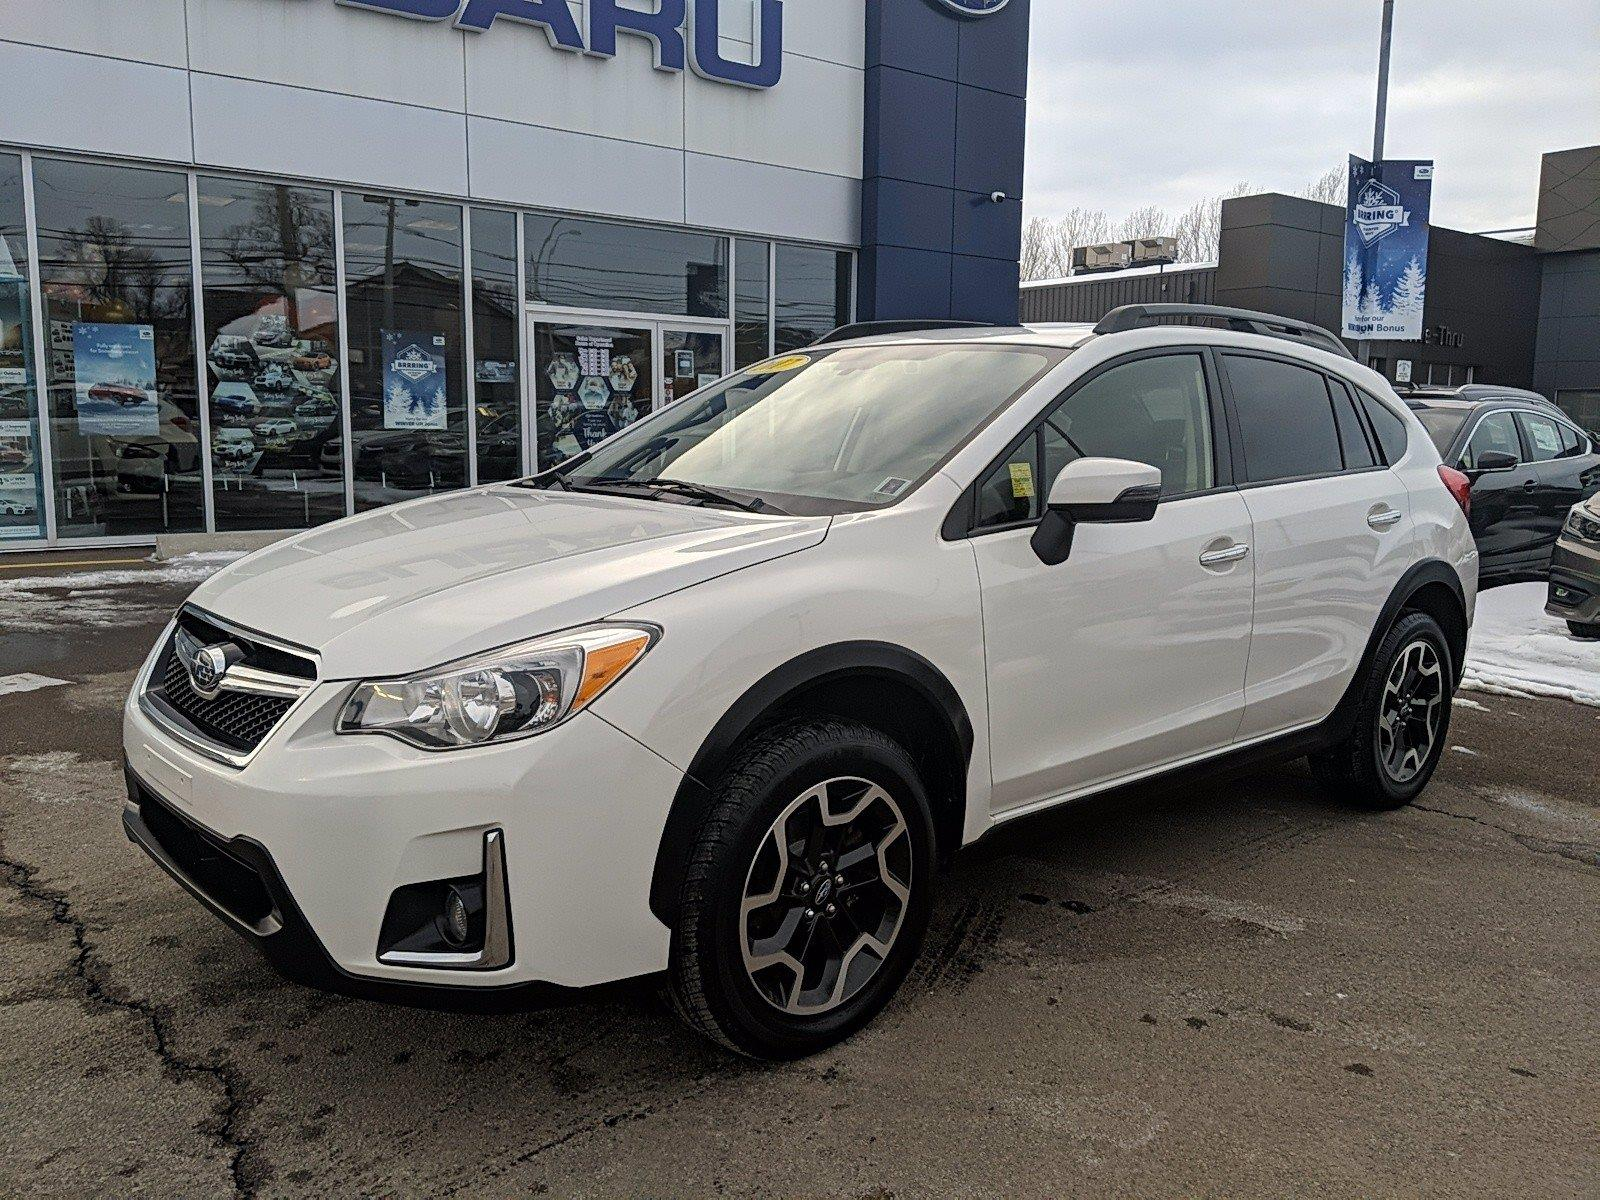 2017 Subaru Crosstrek Limited - 50,204km